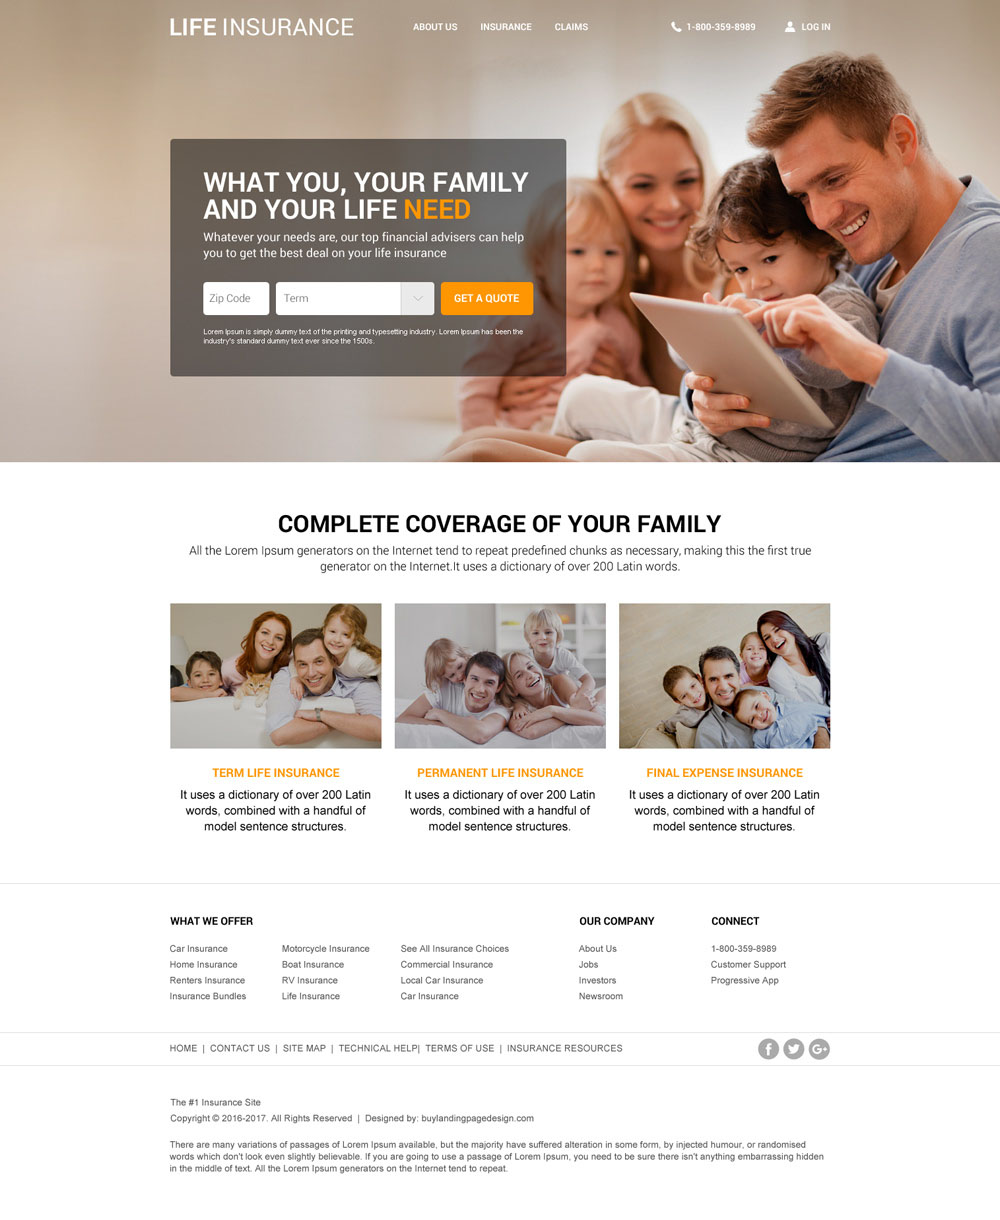 life insurance agency html website template design